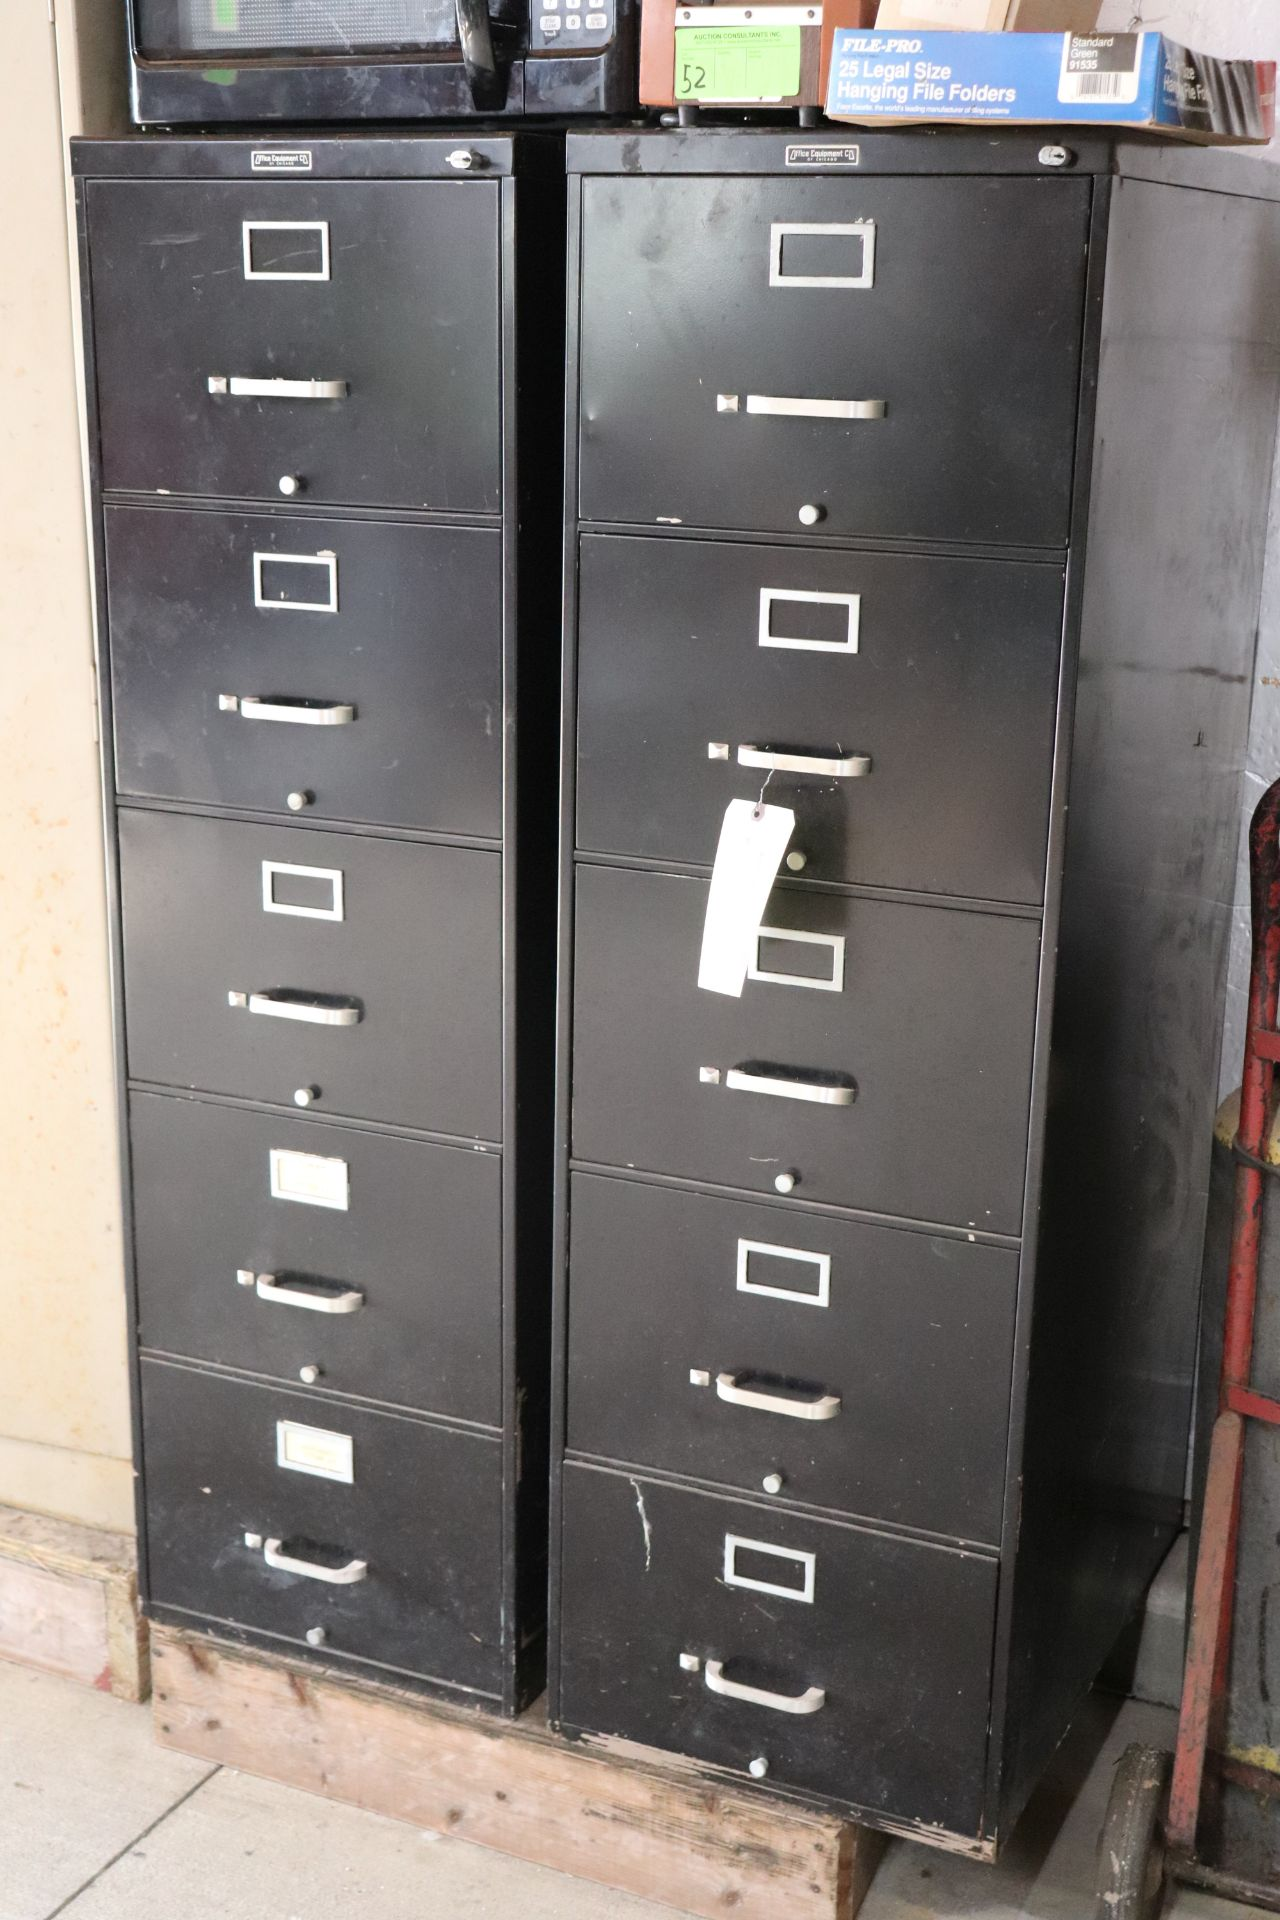 Two five-drawer filing cabinets by Office Equiupment Company